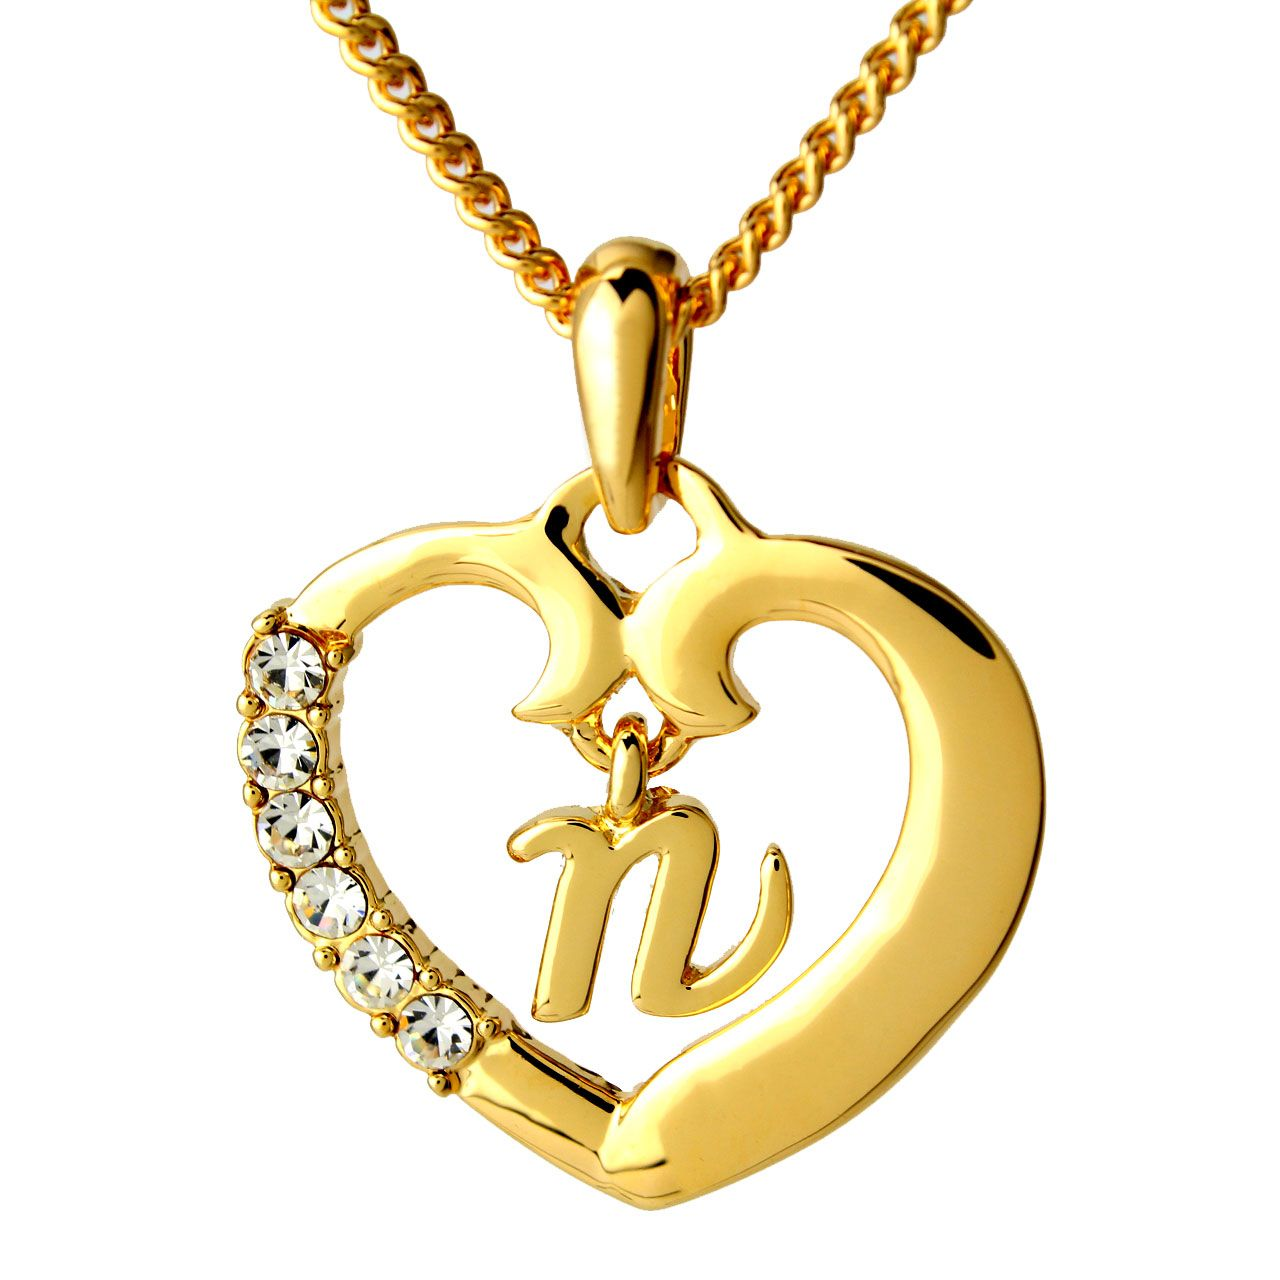 S Name Wallpaper In Heart Jewellery Pendant Locket Fashion Accessory Necklace Body Jewelry Chain Yellow Gold Metal 1303086 Wallpaperkiss Your name wallpapers for free download. s name wallpaper in heart jewellery